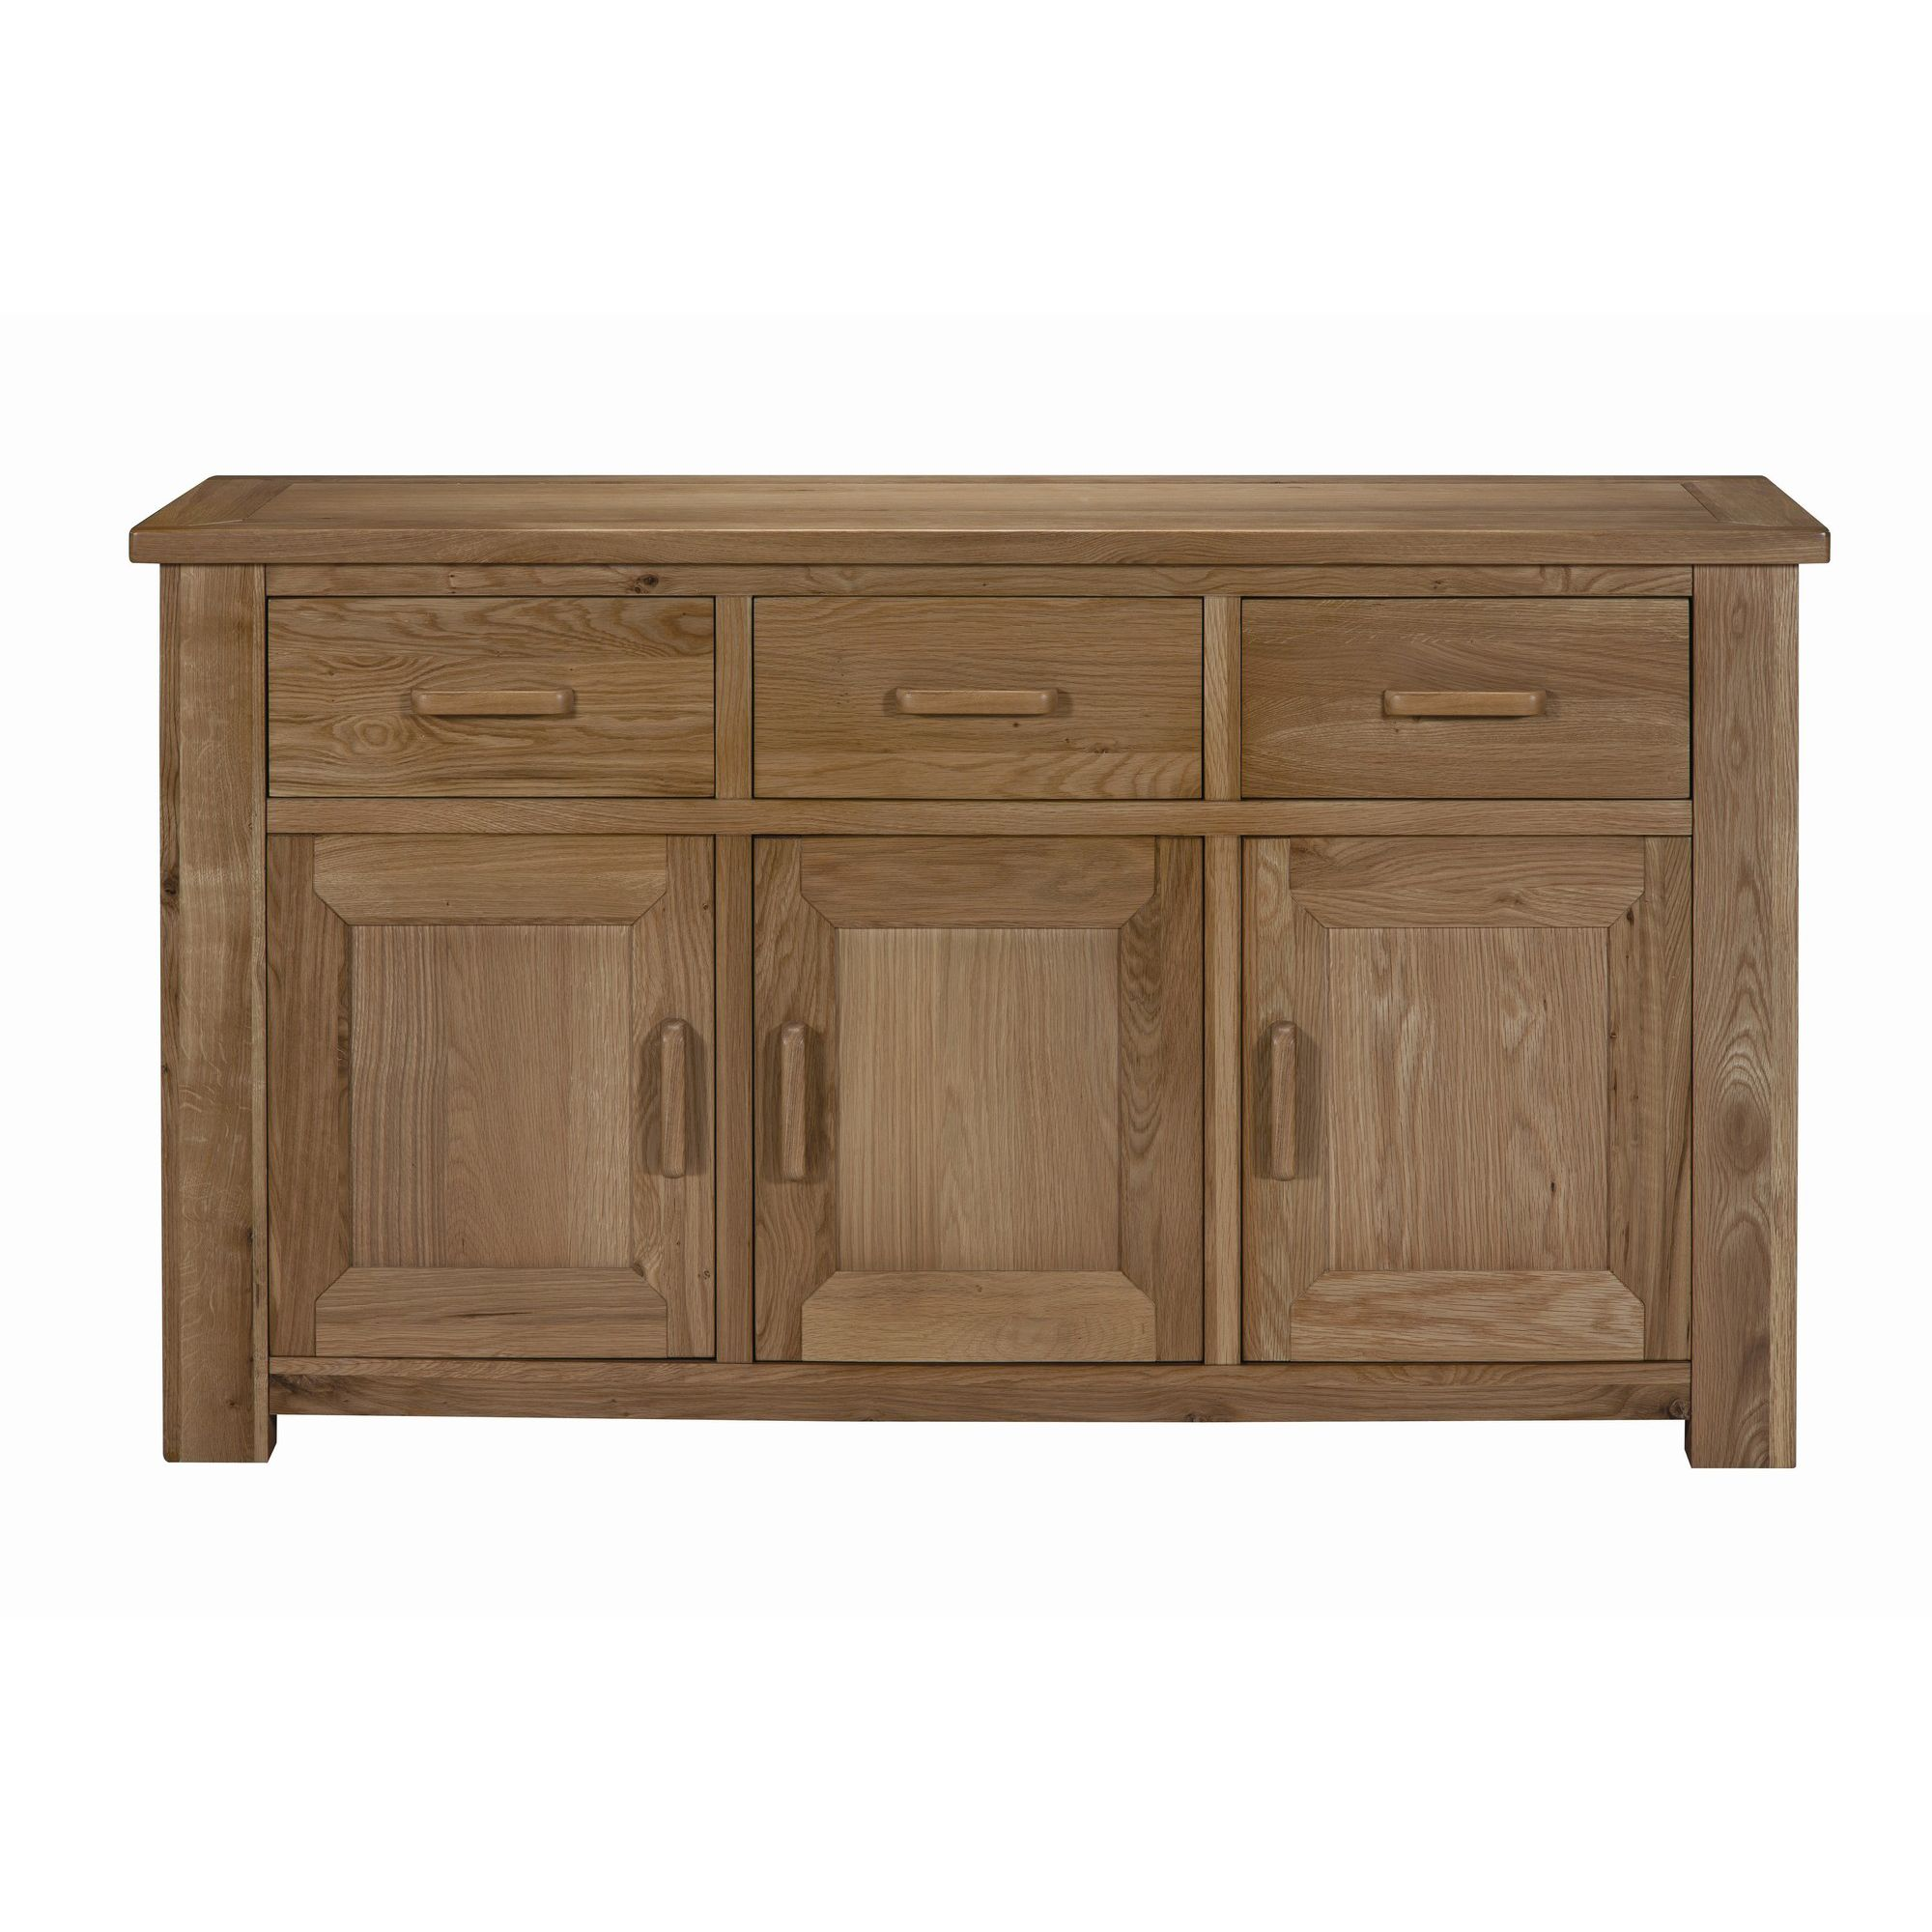 Alterton Furniture Wiltshire Large Sideboard at Tesco Direct